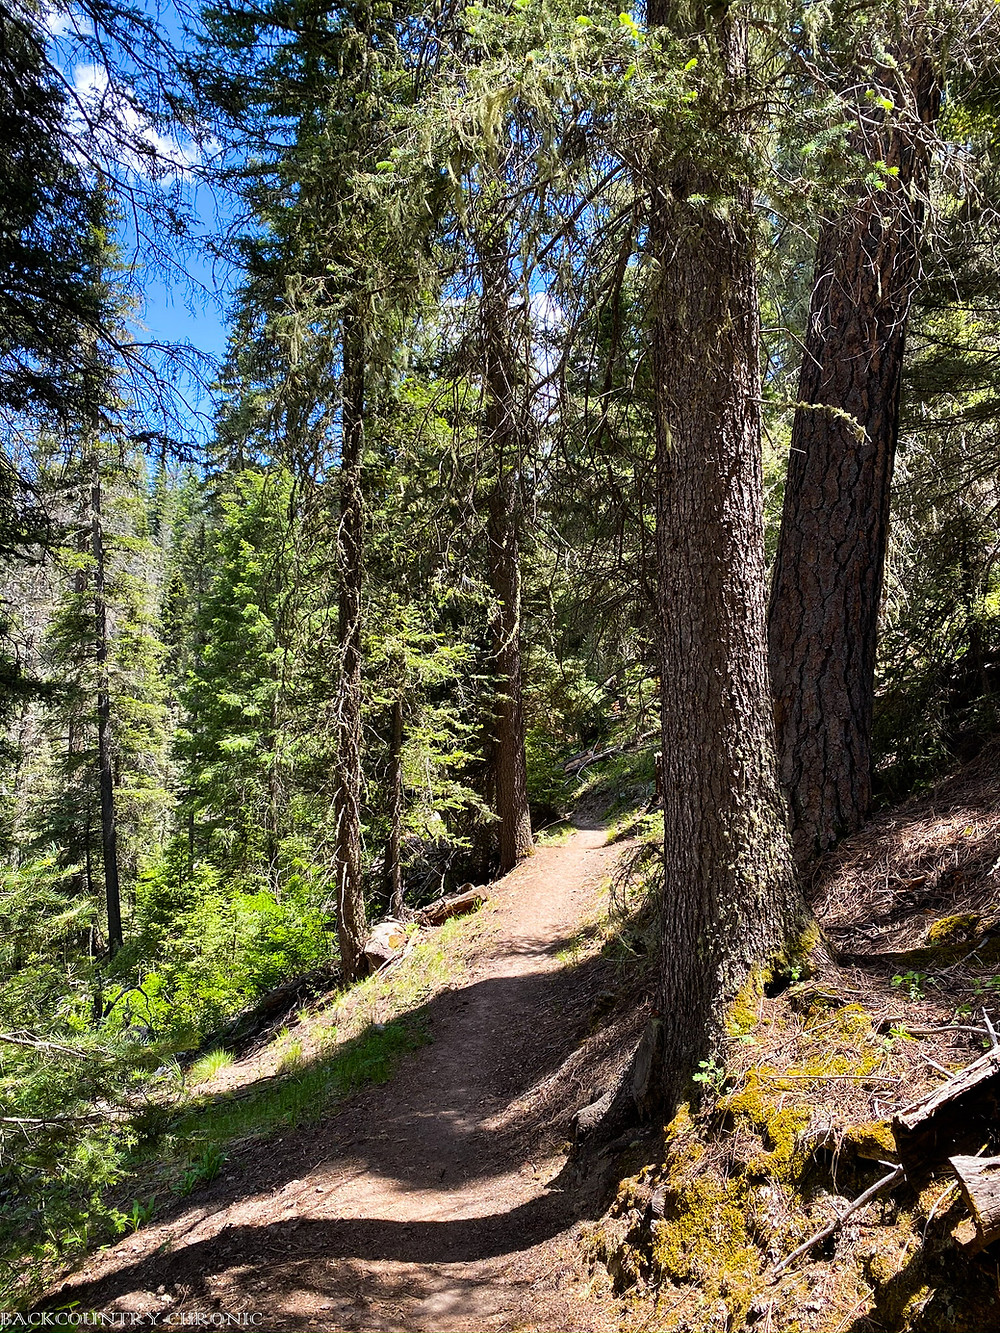 The East Fork Trail in the Santa Fe National Forest